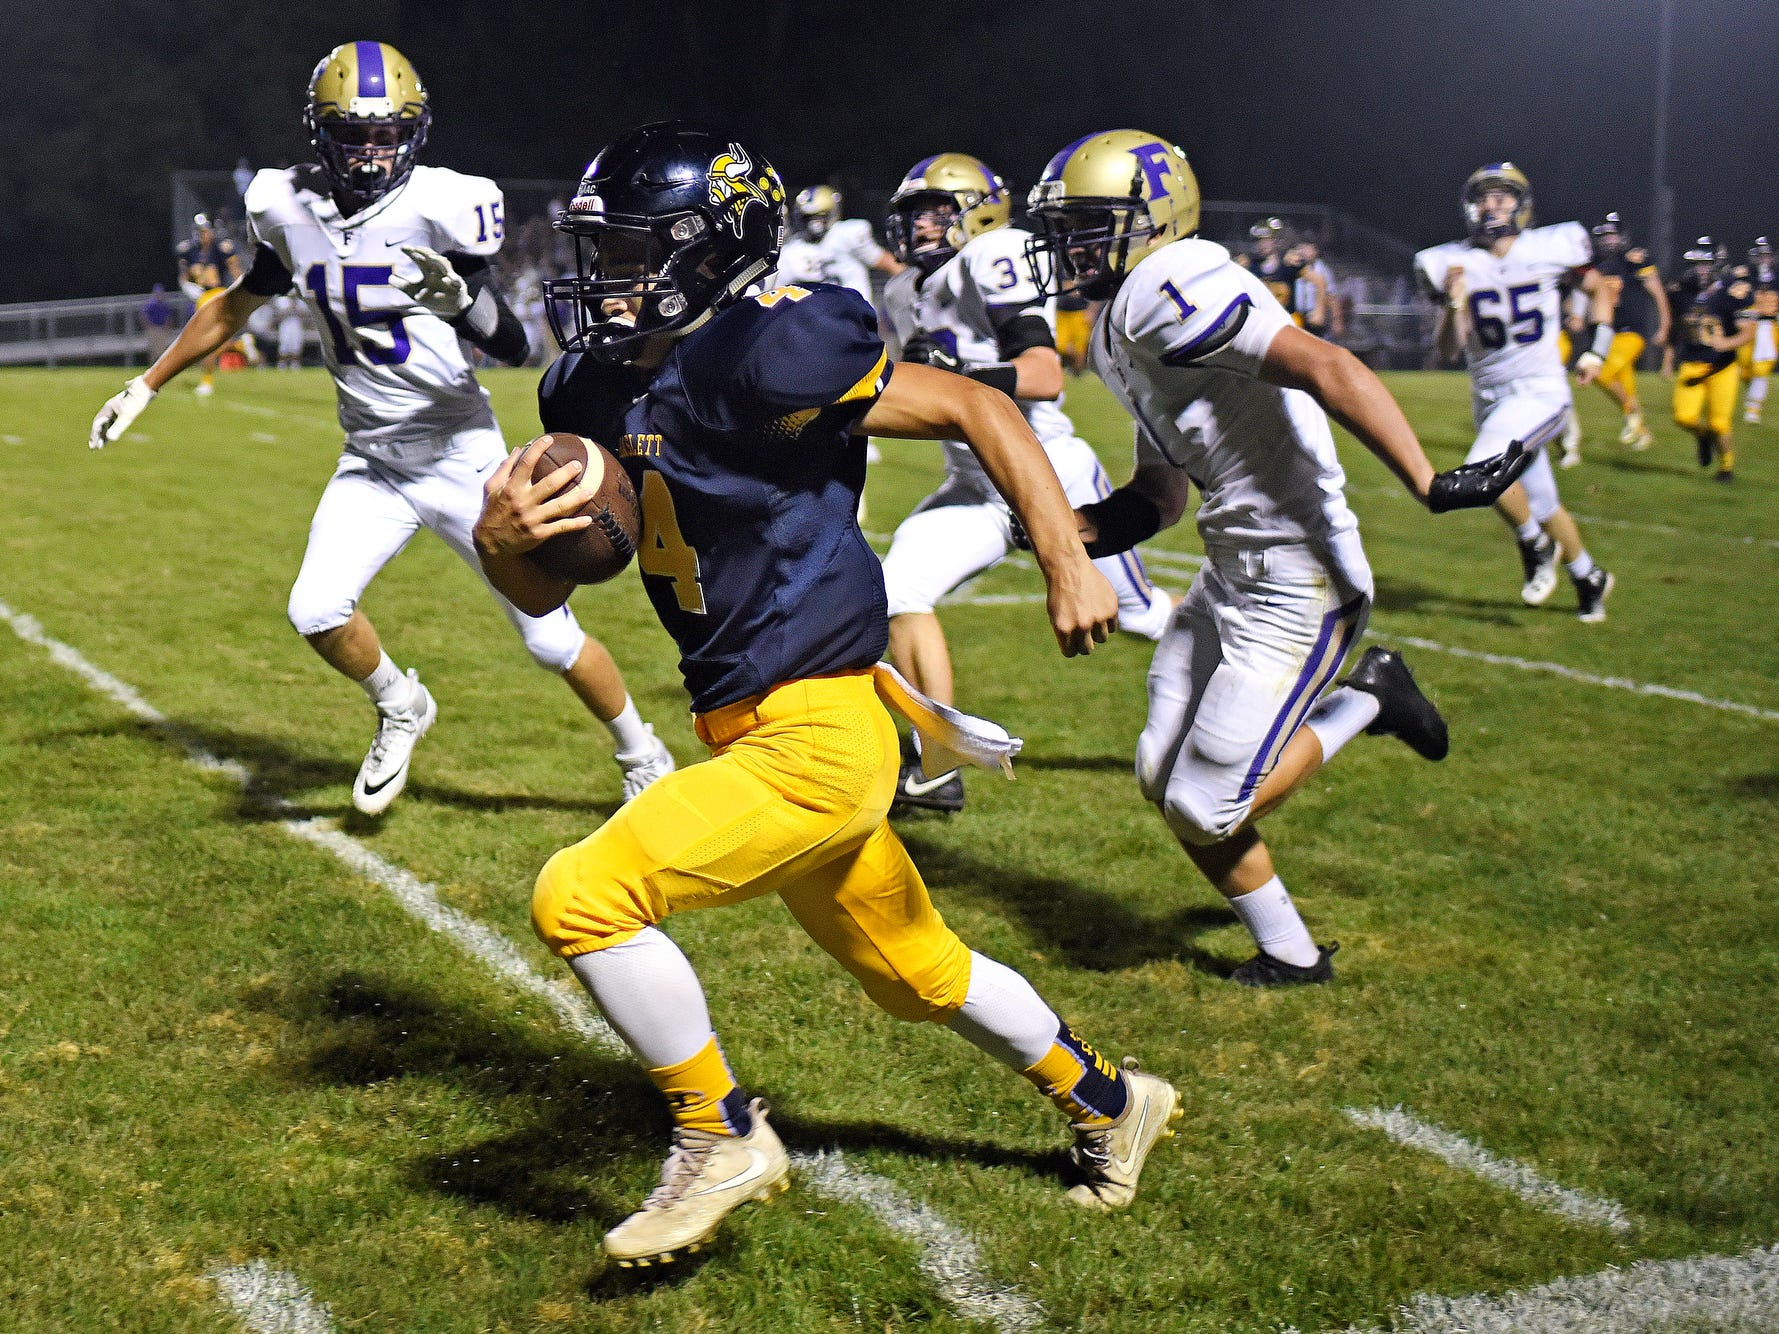 Haslett's Mateo Medrano outruns the Fowlerville defense on his way to a touchdown during the fourth quarter on Friday, Sept. 14, 2018, at Haslett High School.